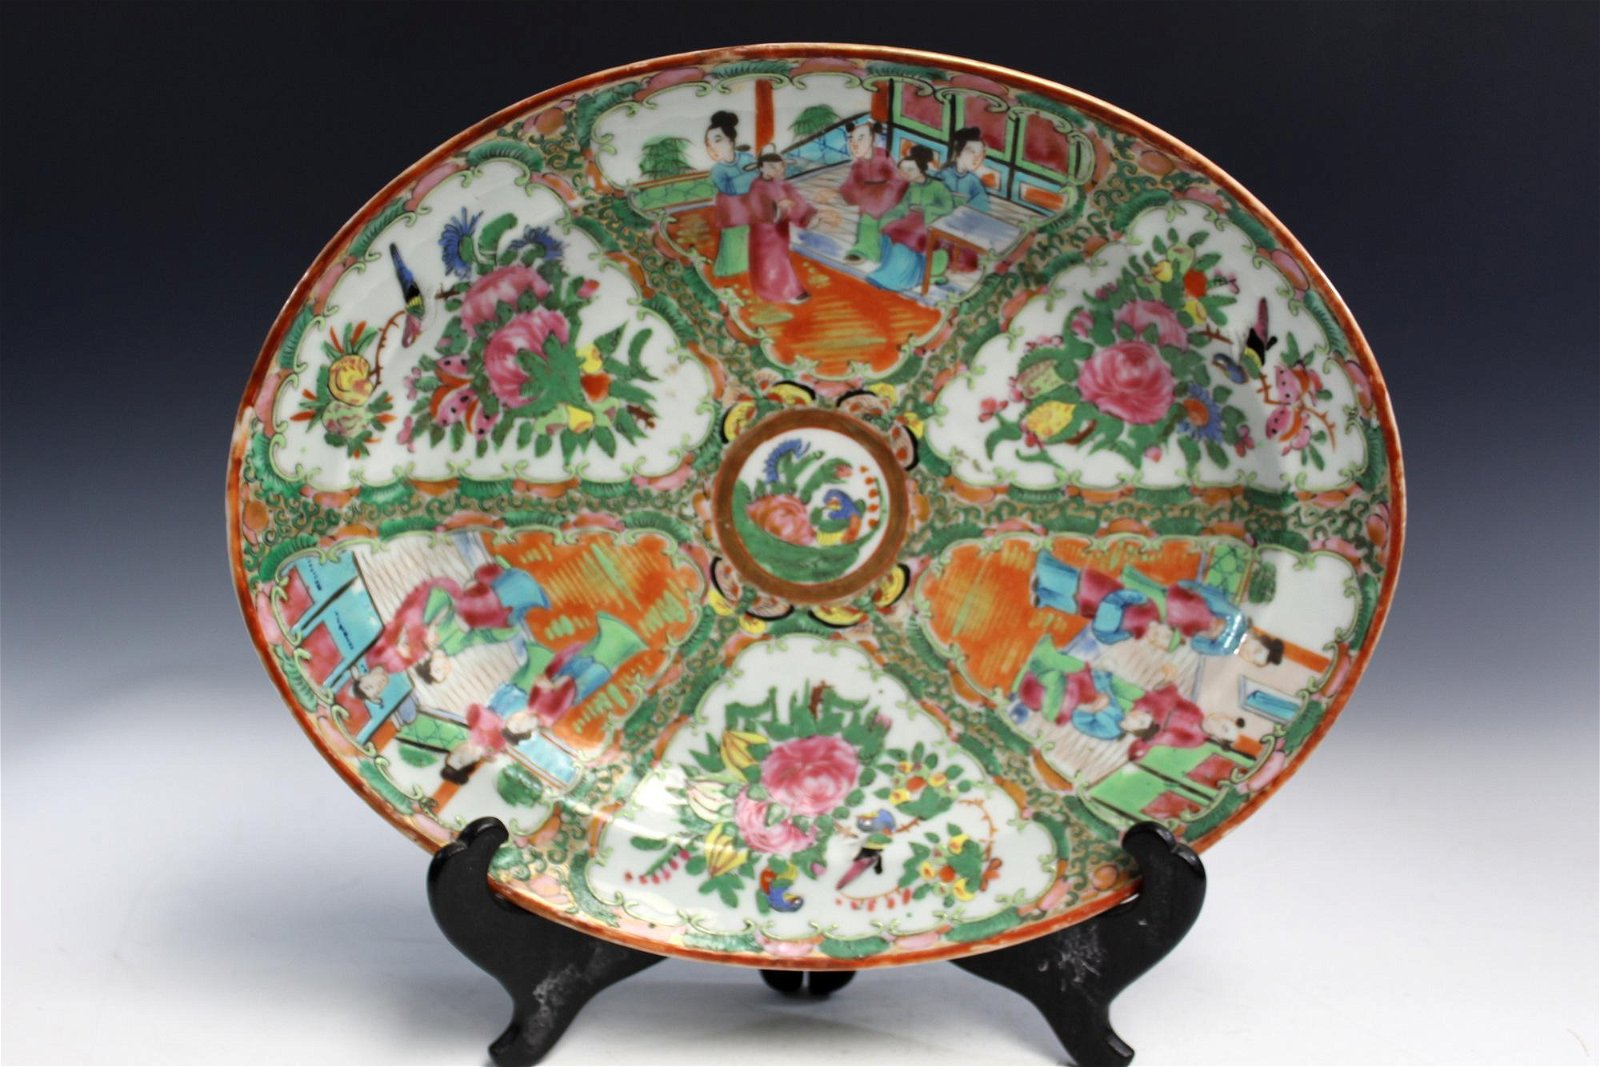 Chinese Export Rose Medallion Oval Plate. Early 20Th C.